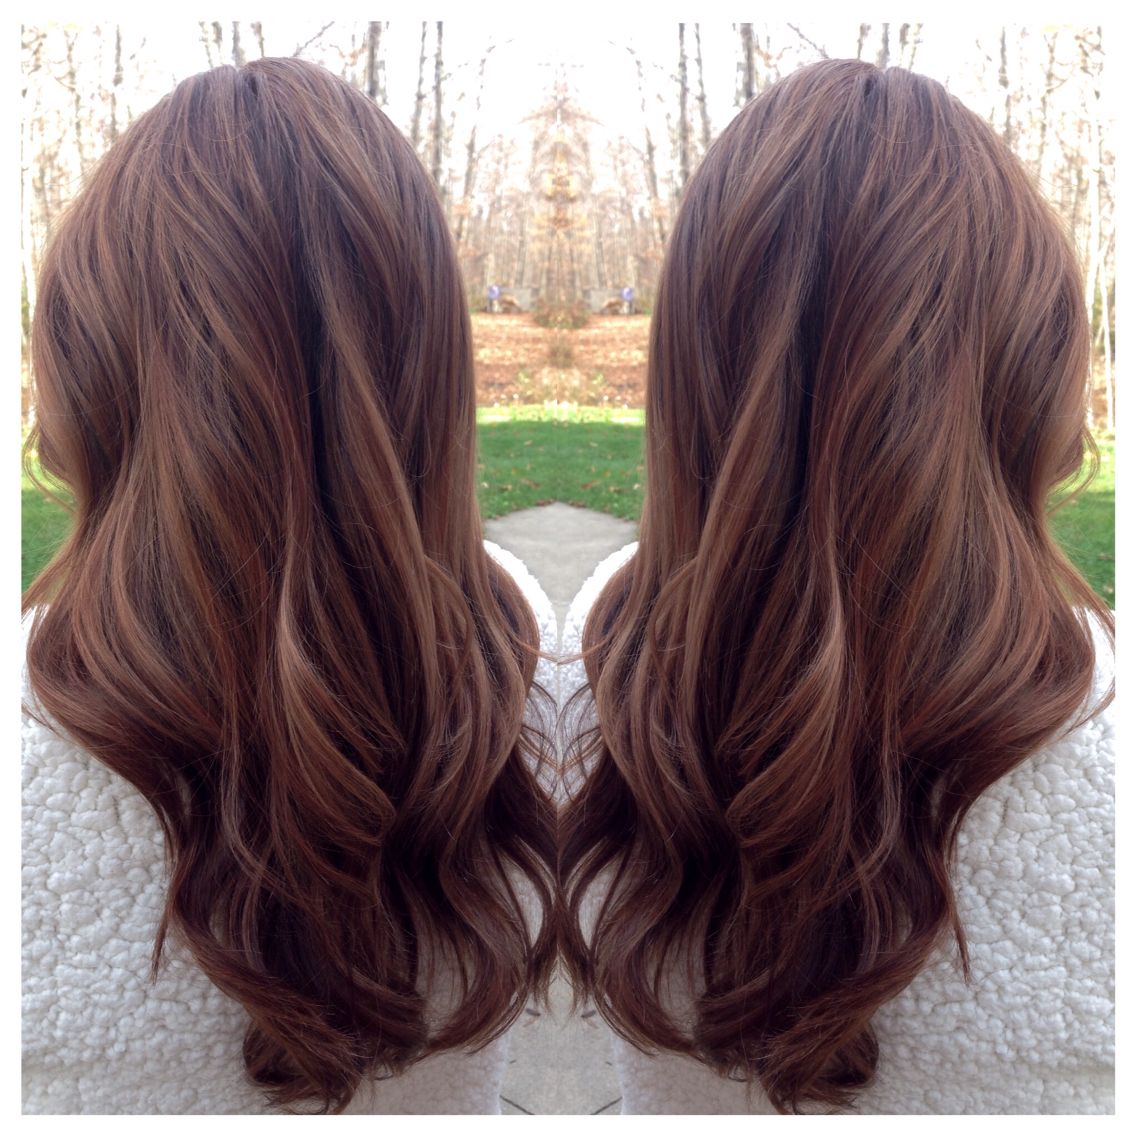 Hilight On Dark Hair Soft Curls On Warm Brown Hair Great For